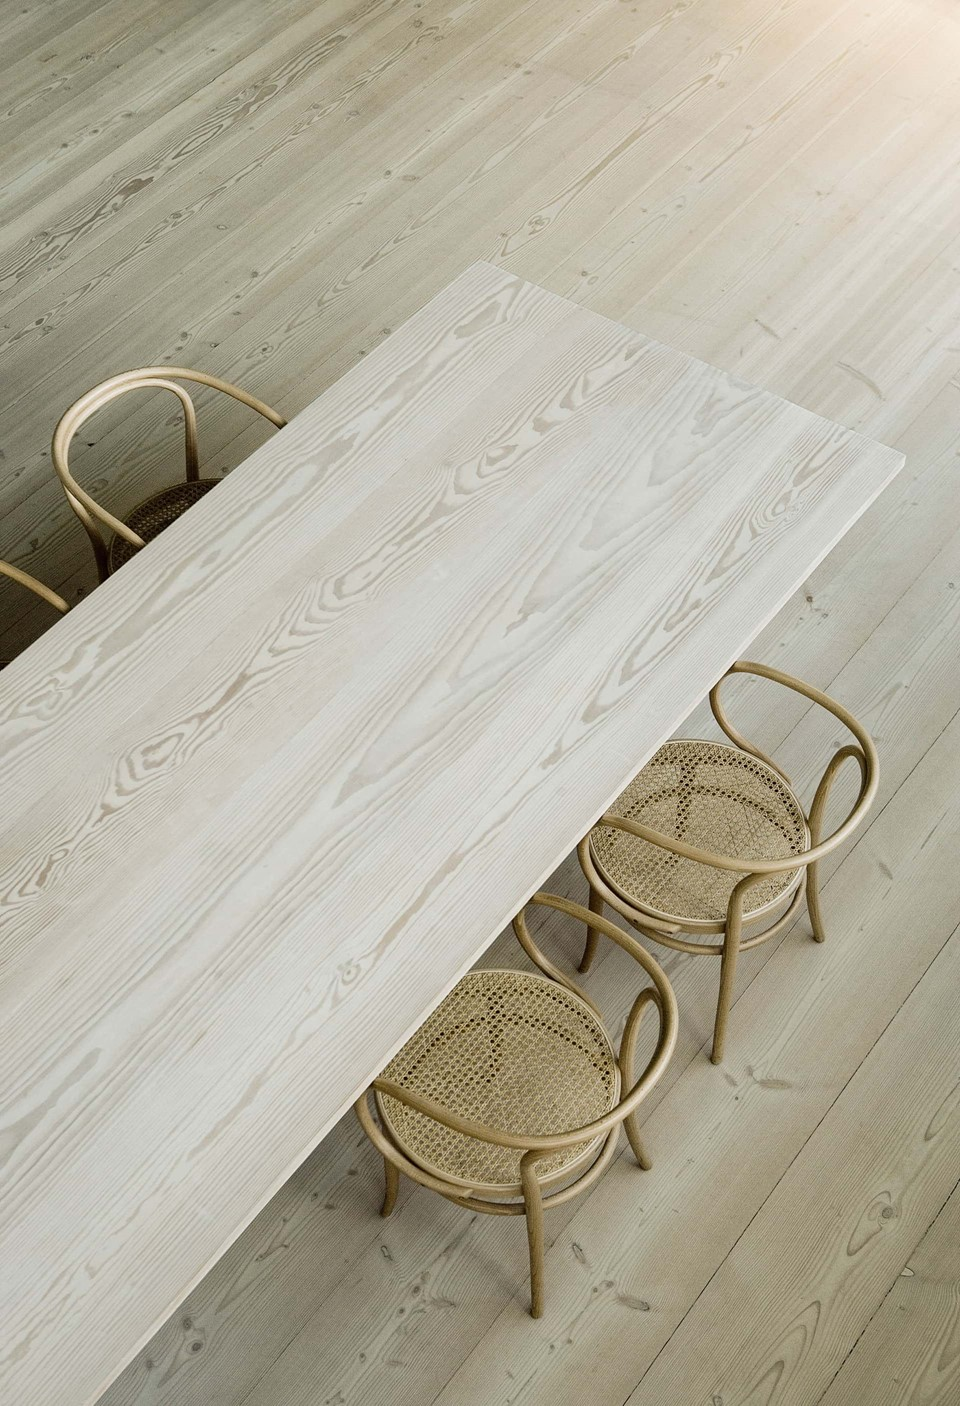 douglas-furniture-planks_kvadrat-stockholm_plank-table_dinesen.jpg